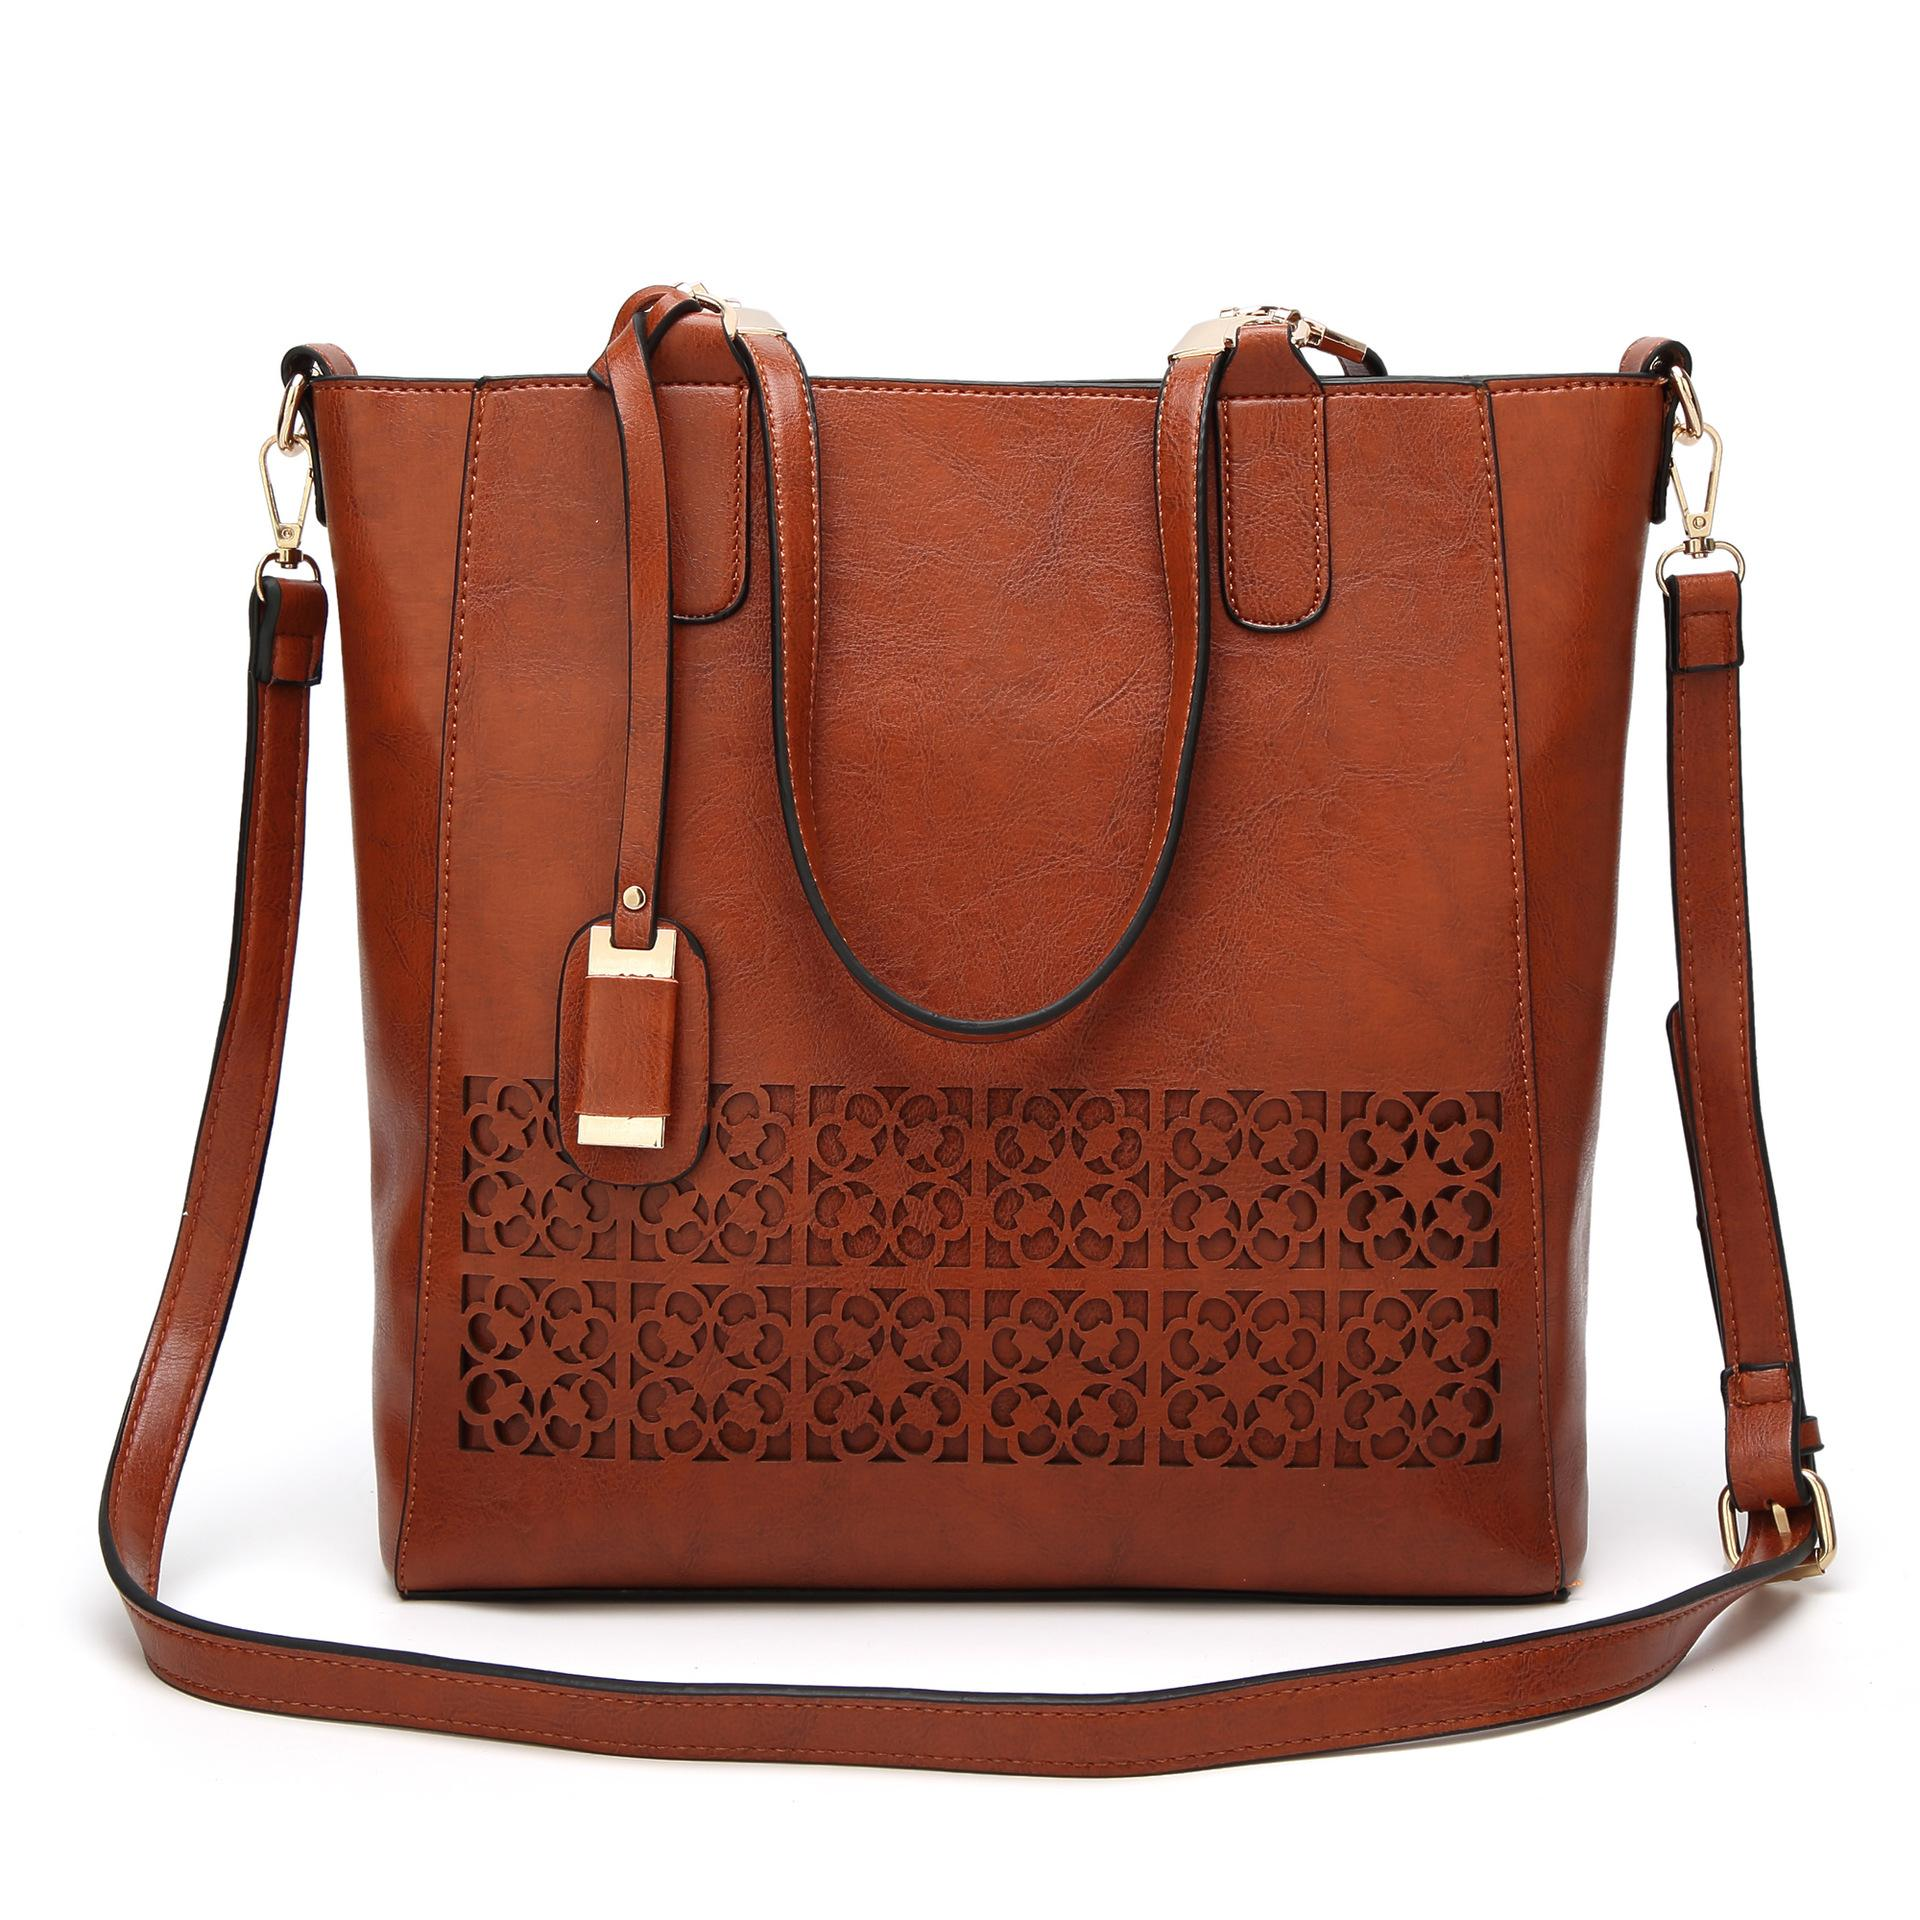 New Female Bag Europe And The United States Cross Border Hollow Out Female  Bag Fashion Laptop Handbag Single Shoulder Bag Weekend Bags Luxury Bags  From ... 328a9ed5e81ed